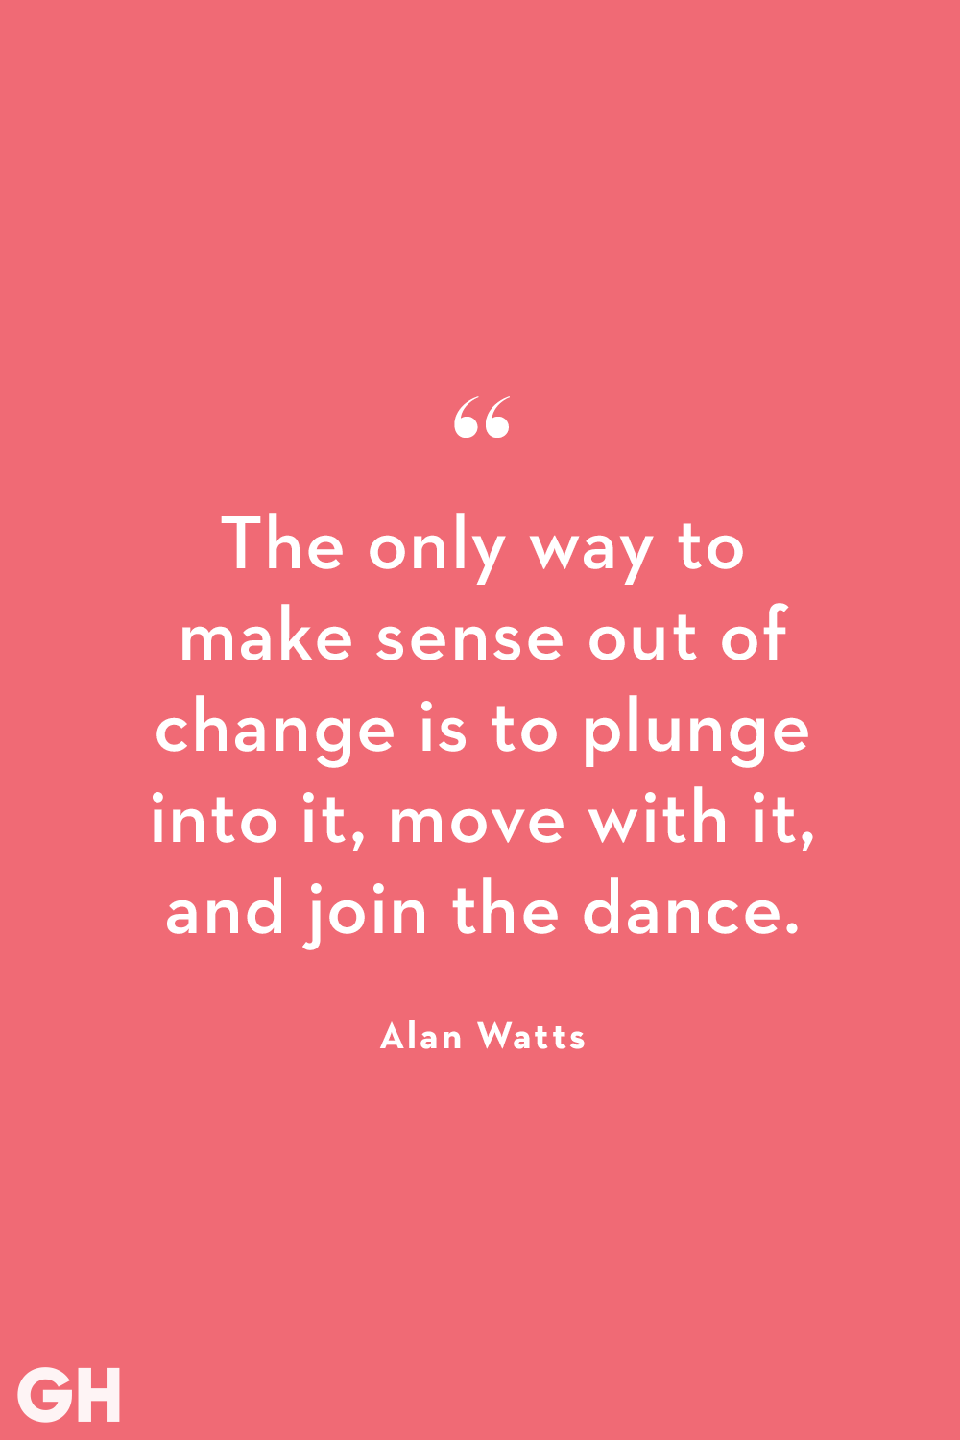 "<p>The only way to make sense out of change is to plunge into it, move with it, and join the dance.</p><p><strong><a href=""https://www.goodhousekeeping.com/health/wellness/g2401/inspirational-quotes/"" rel=""nofollow noopener"" target=""_blank"" data-ylk=""slk:RELATED: 41 Inspirational Quotes for When Your Mood Could Use a Boost"" class=""link rapid-noclick-resp"">RELATED: 41 Inspirational Quotes for When Your Mood Could Use a Boost</a></strong></p>"